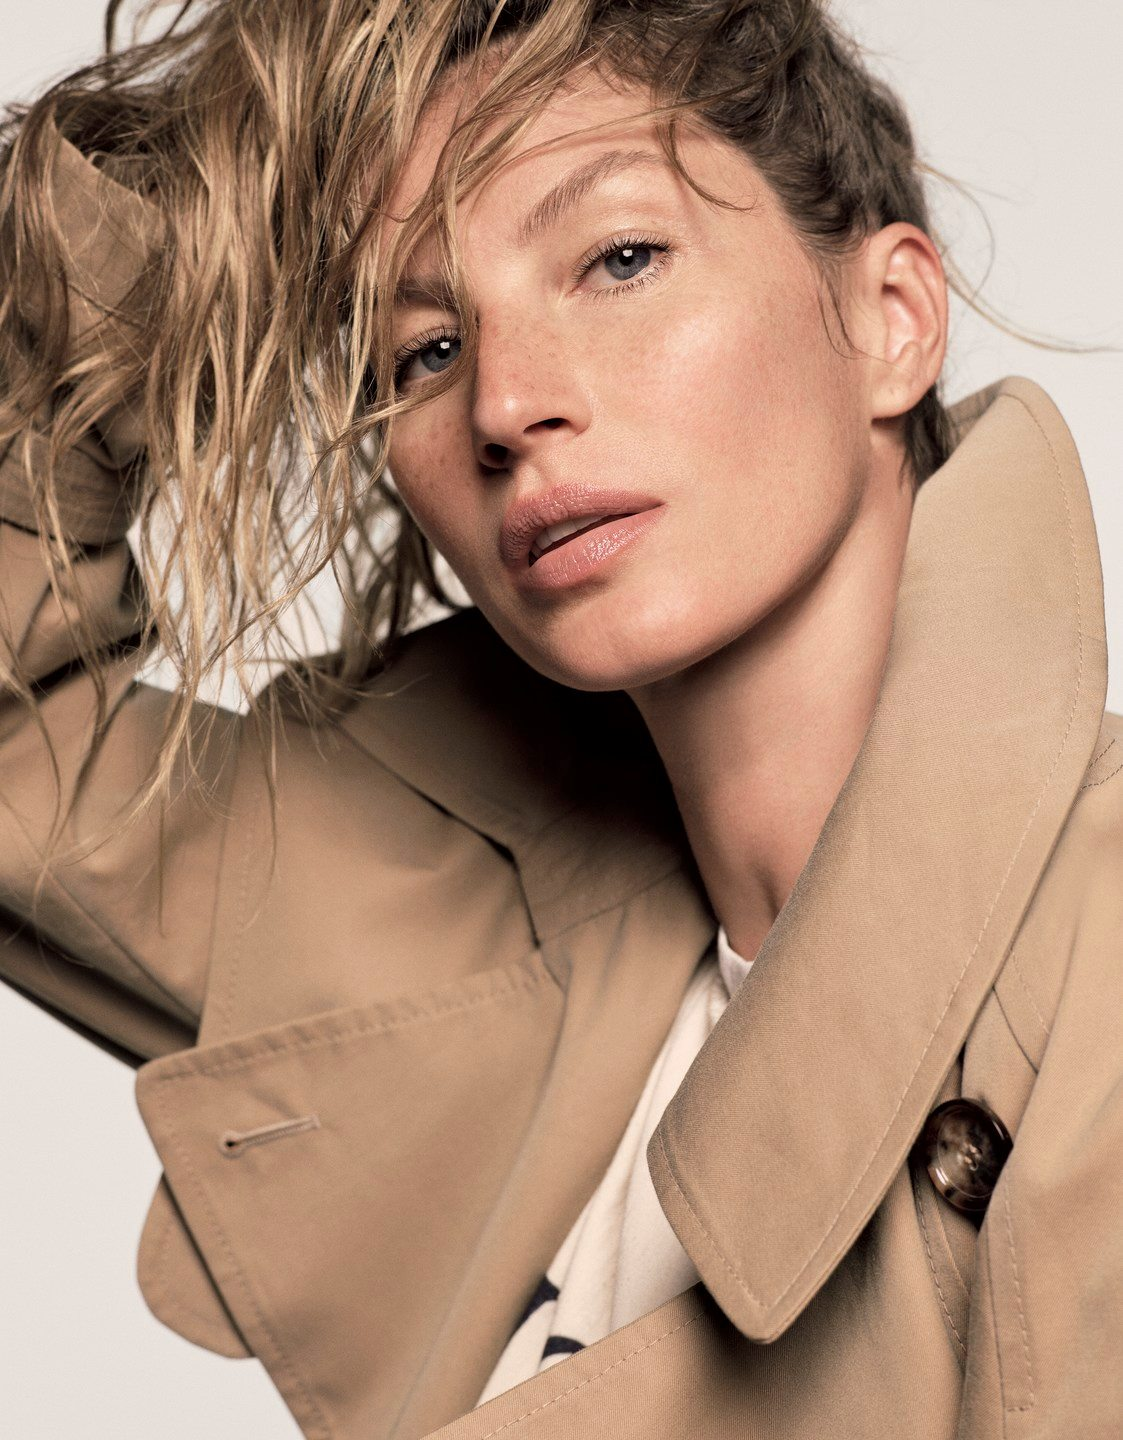 Vogue Japan February 2018 Gisele Bundchen by Luigi & Iango